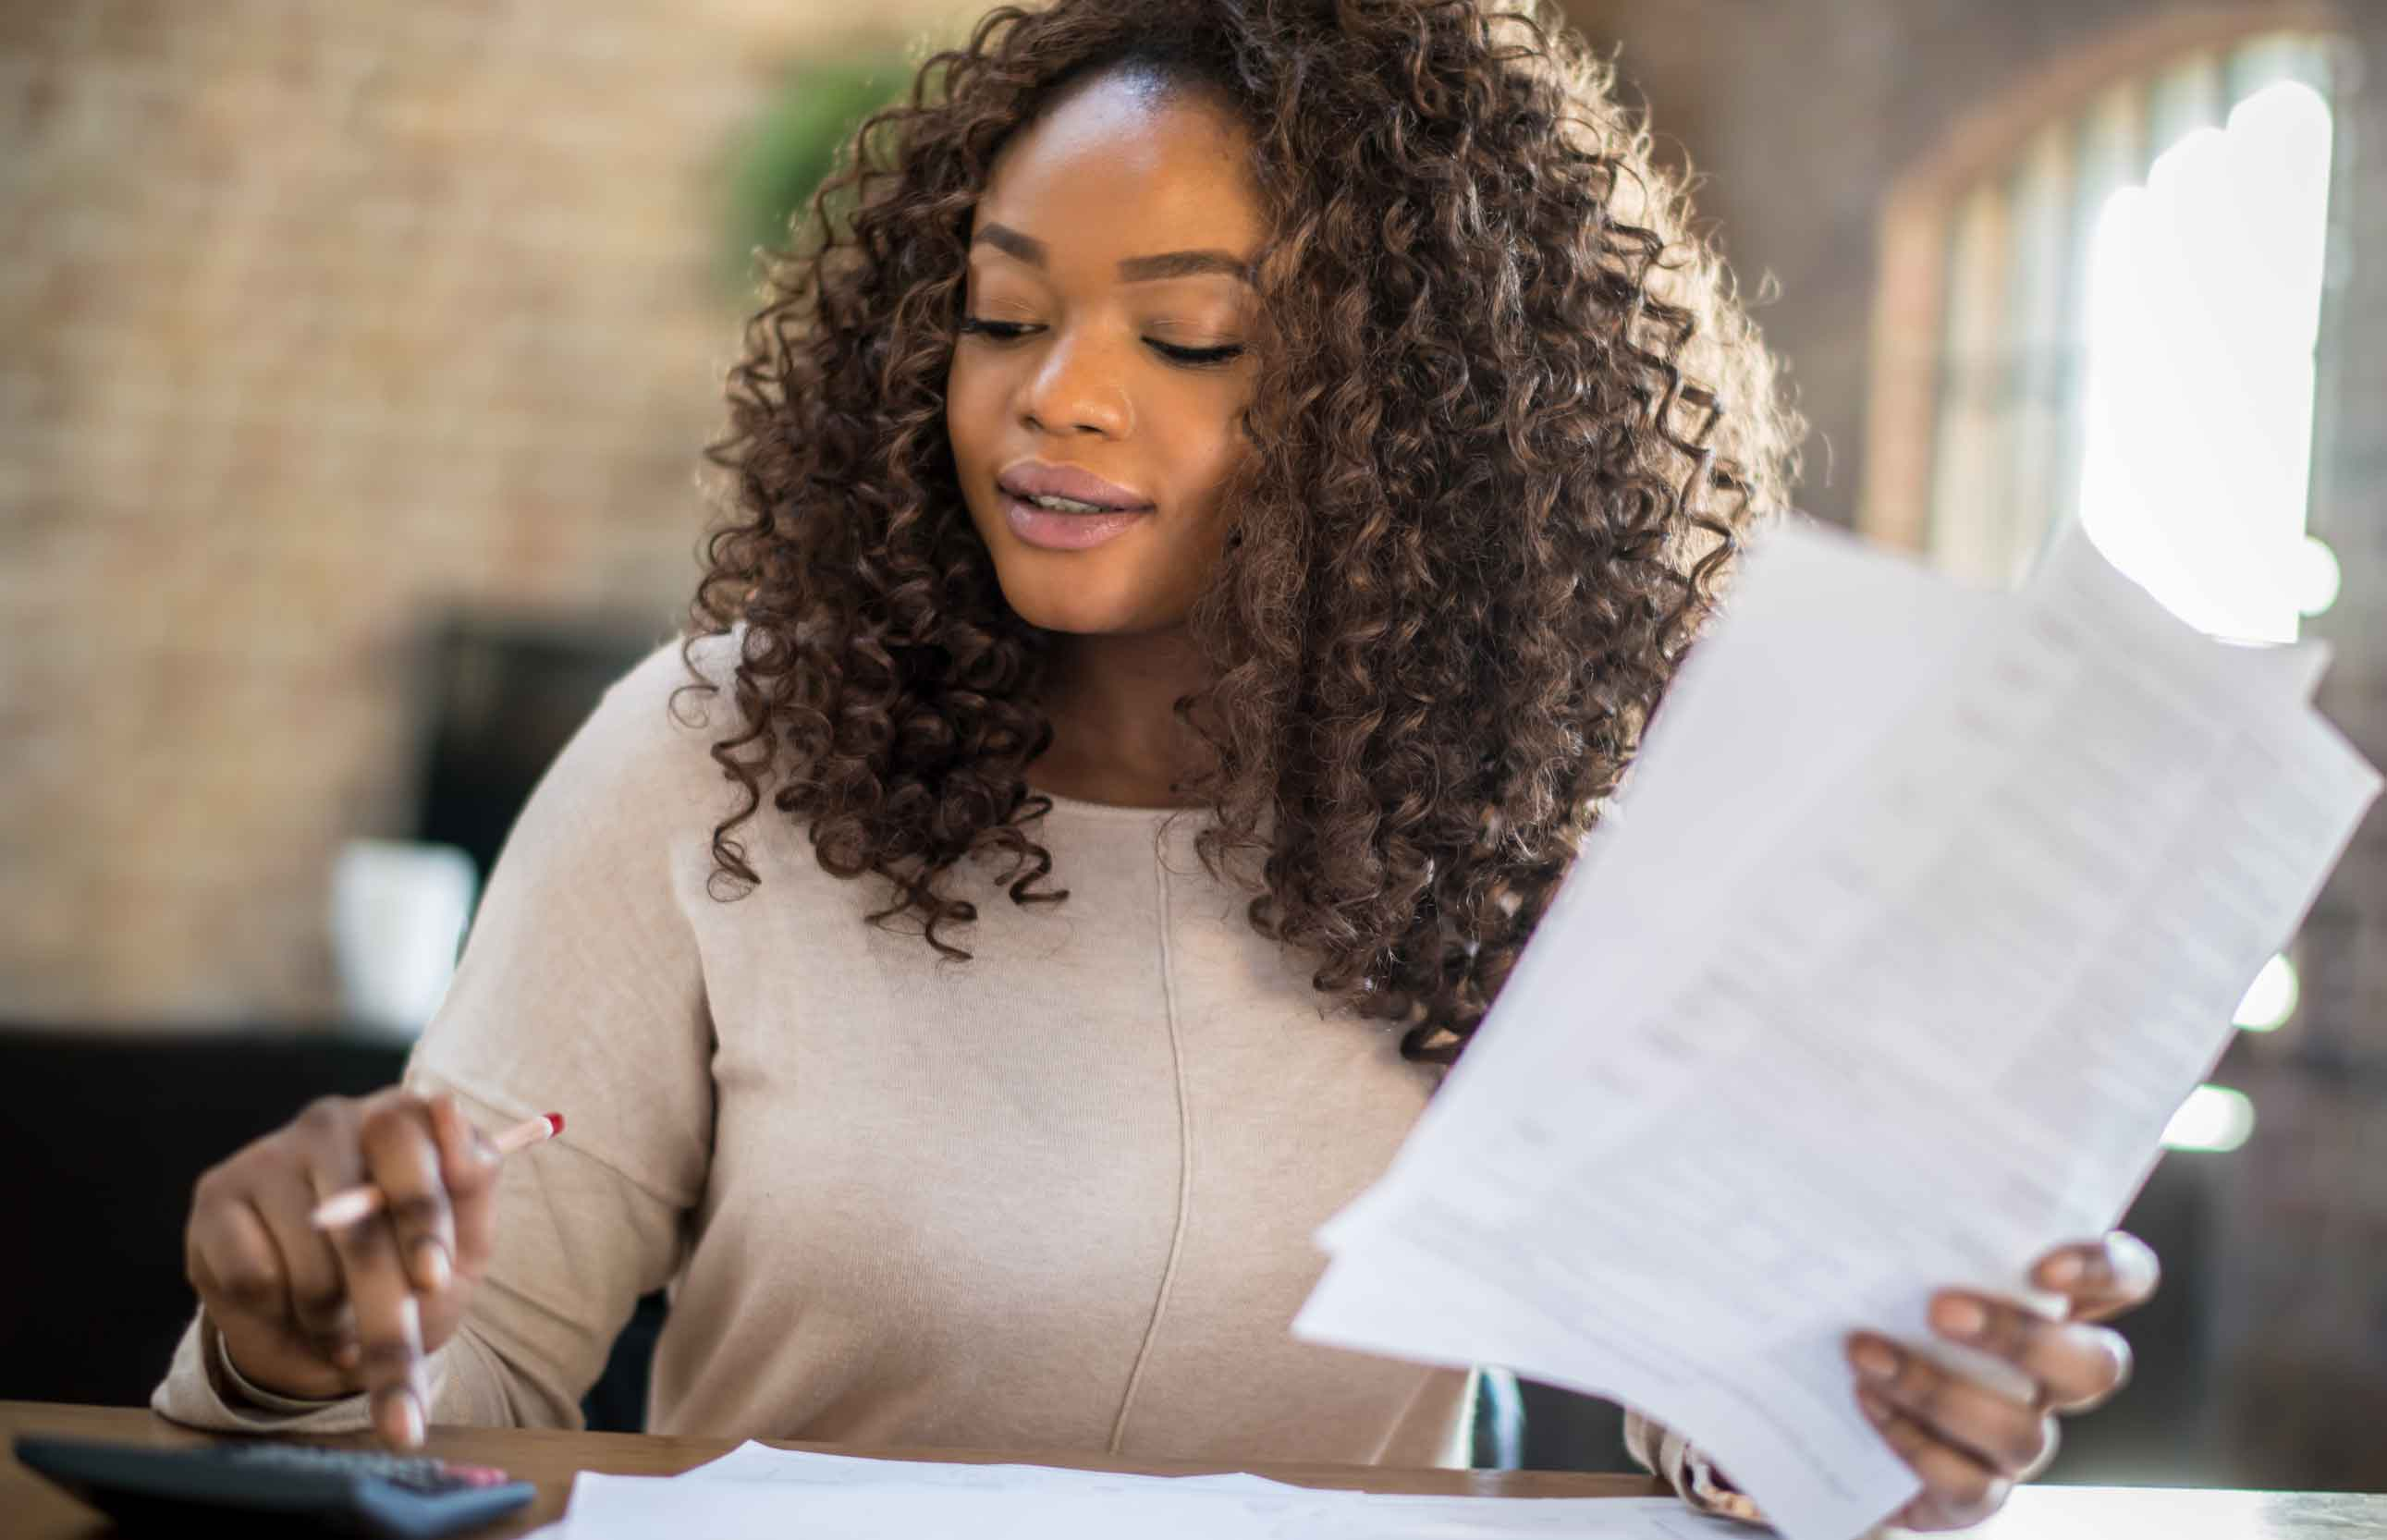 5 Things You Can Do Now To Prepare Your Finances For The